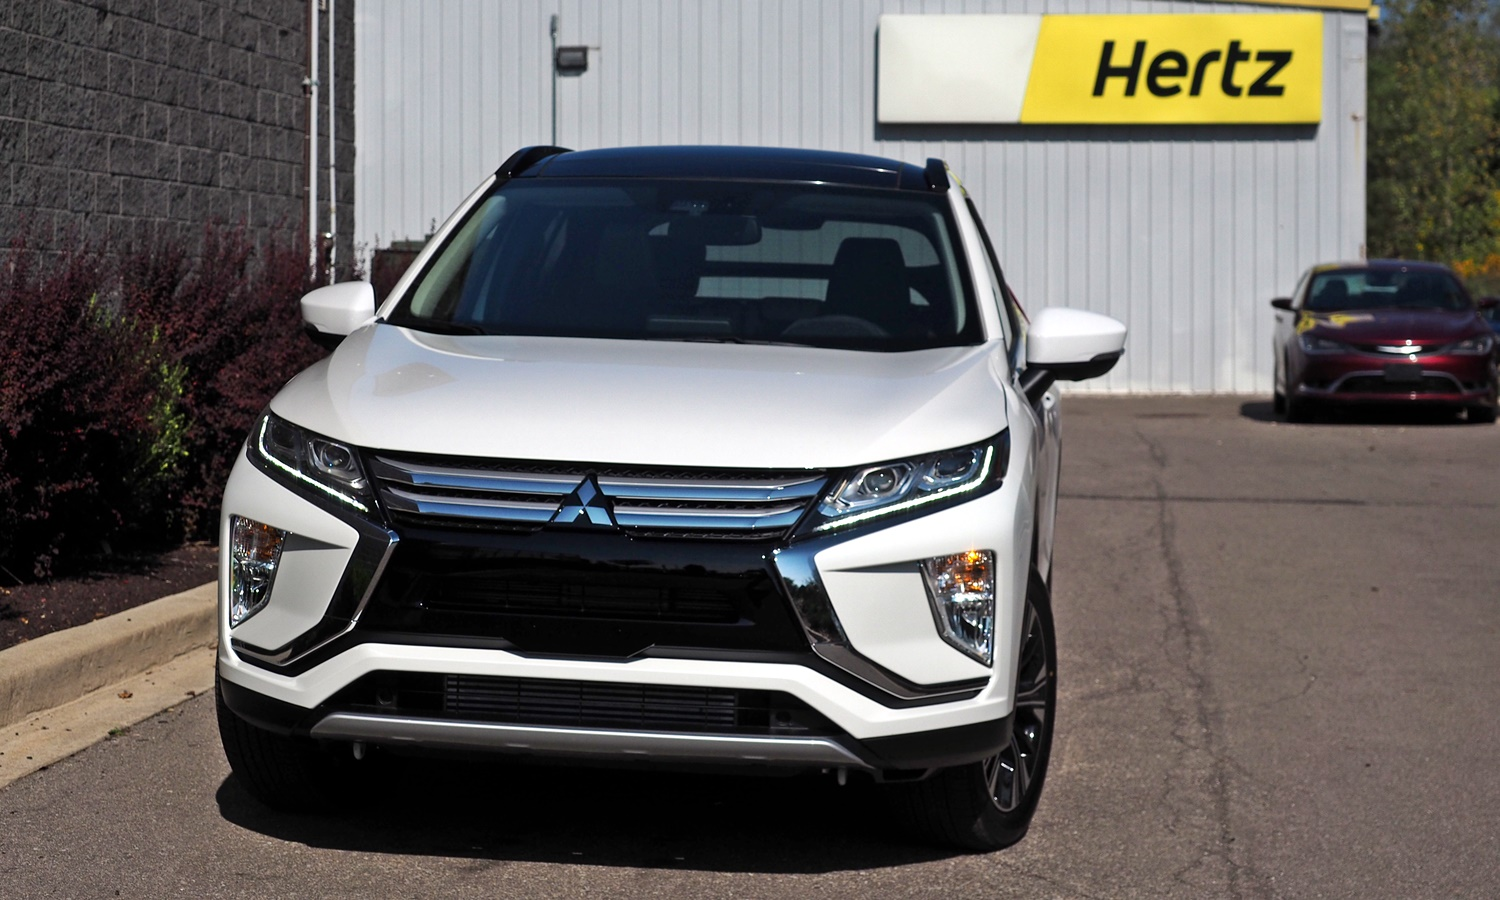 Mitsubishi Eclipse Cross Photos: 2018 Mitsubishi Eclipse Cross front view